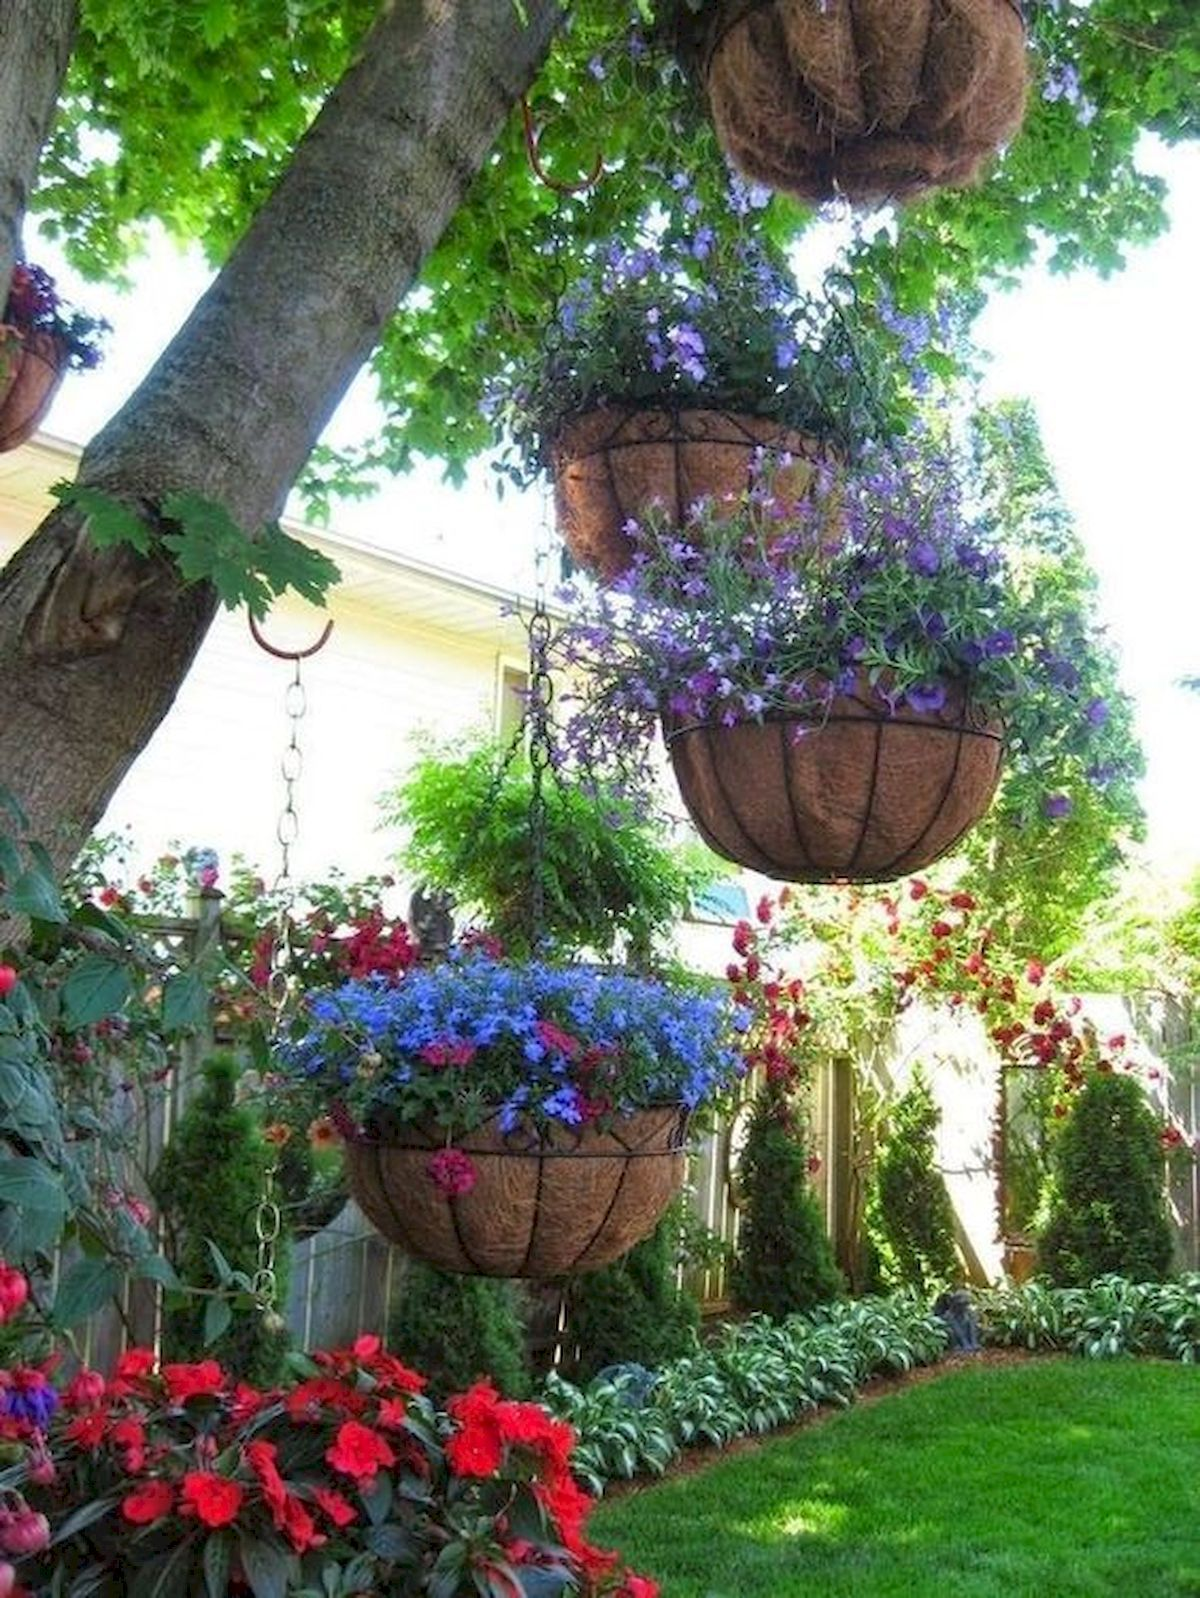 50 Awesome Diy Hanging Plants Ideas For Modern Backyard Garden Hanging Plants Landscaping Tips Easy Landscaping Backyard garden how to plant